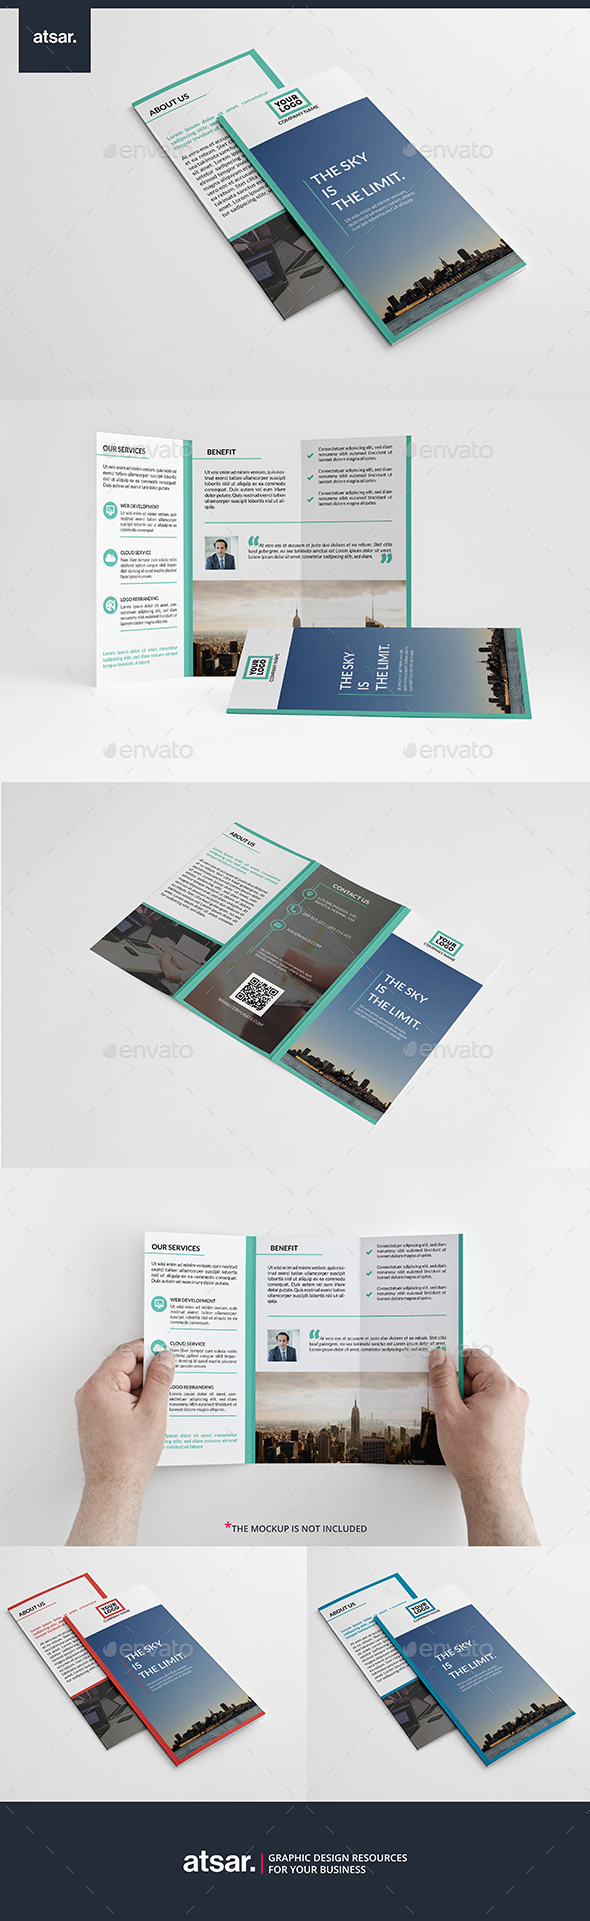 Cleanio Trifold Brochure - Corporate Brochures